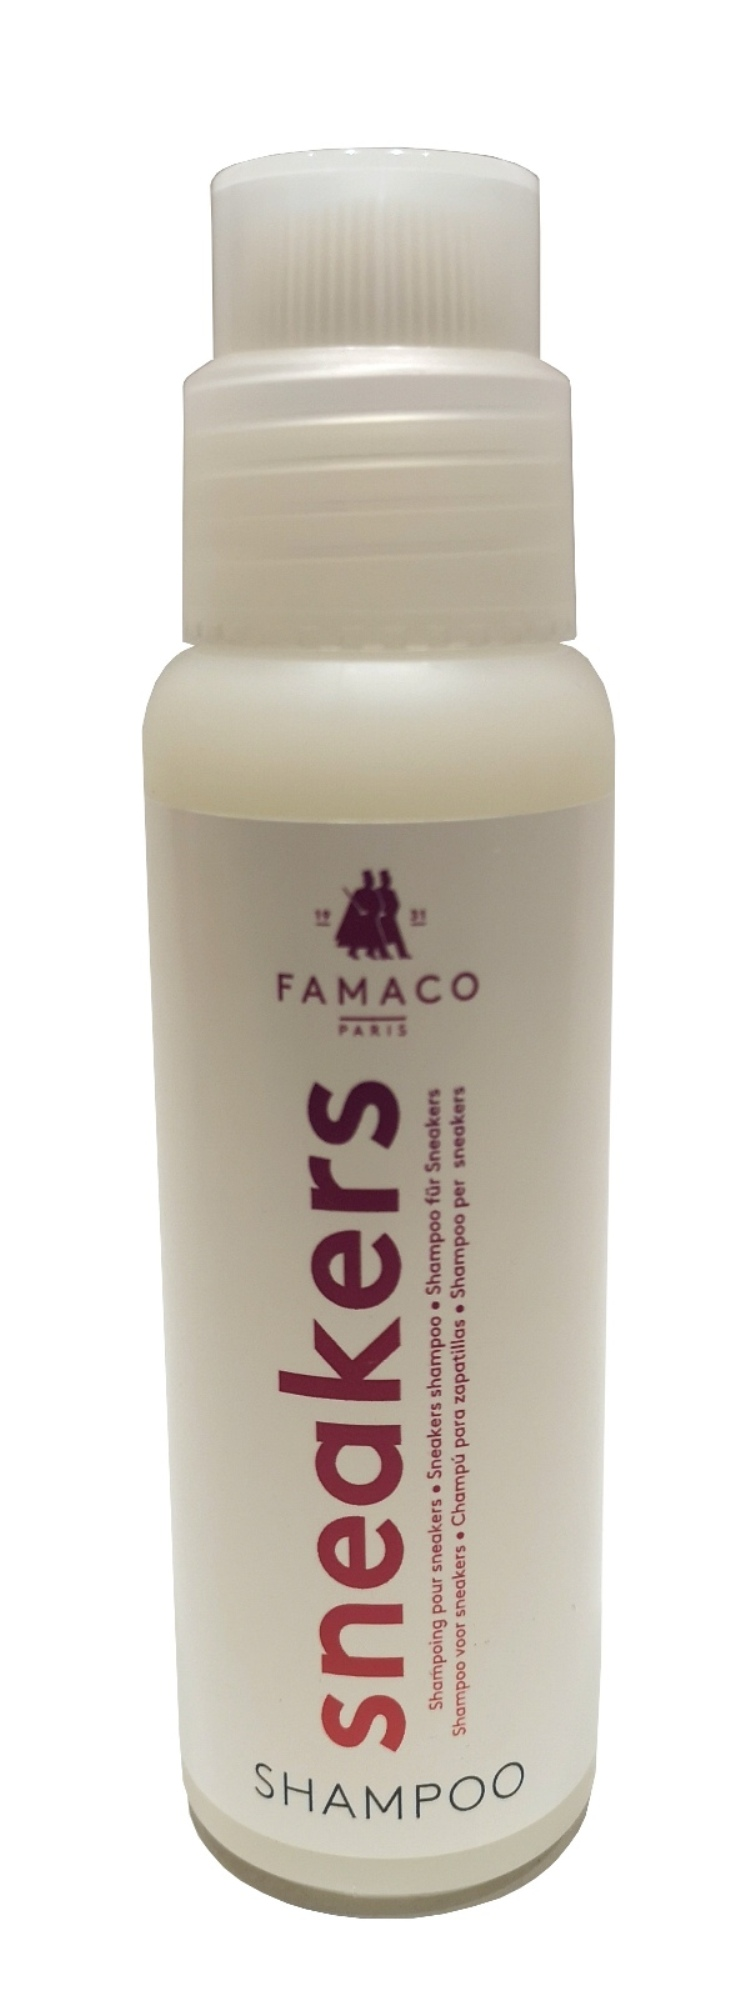 Famaco Sneakers Shampoo 200 ml